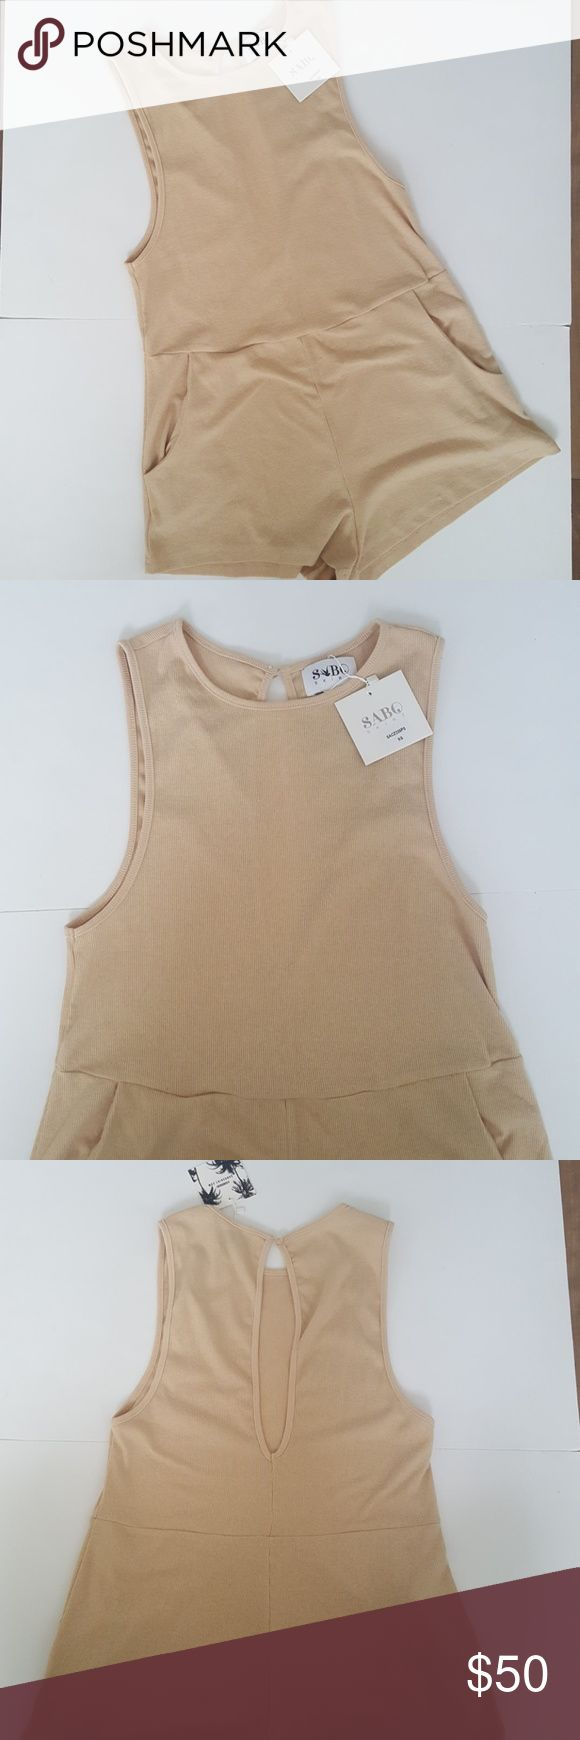 """Sabo Skirt Bardot Beige Playsuit Cute ribbed tank style playsuit. Features large back keyhole opening with single button closure, front pockets and wide scoop armholes. Stock images provided to show fit. Bust 16"""" Length 29"""" Inseam 1 1/2"""" Sabo Skirt Pants Jumpsuits & Rompers"""